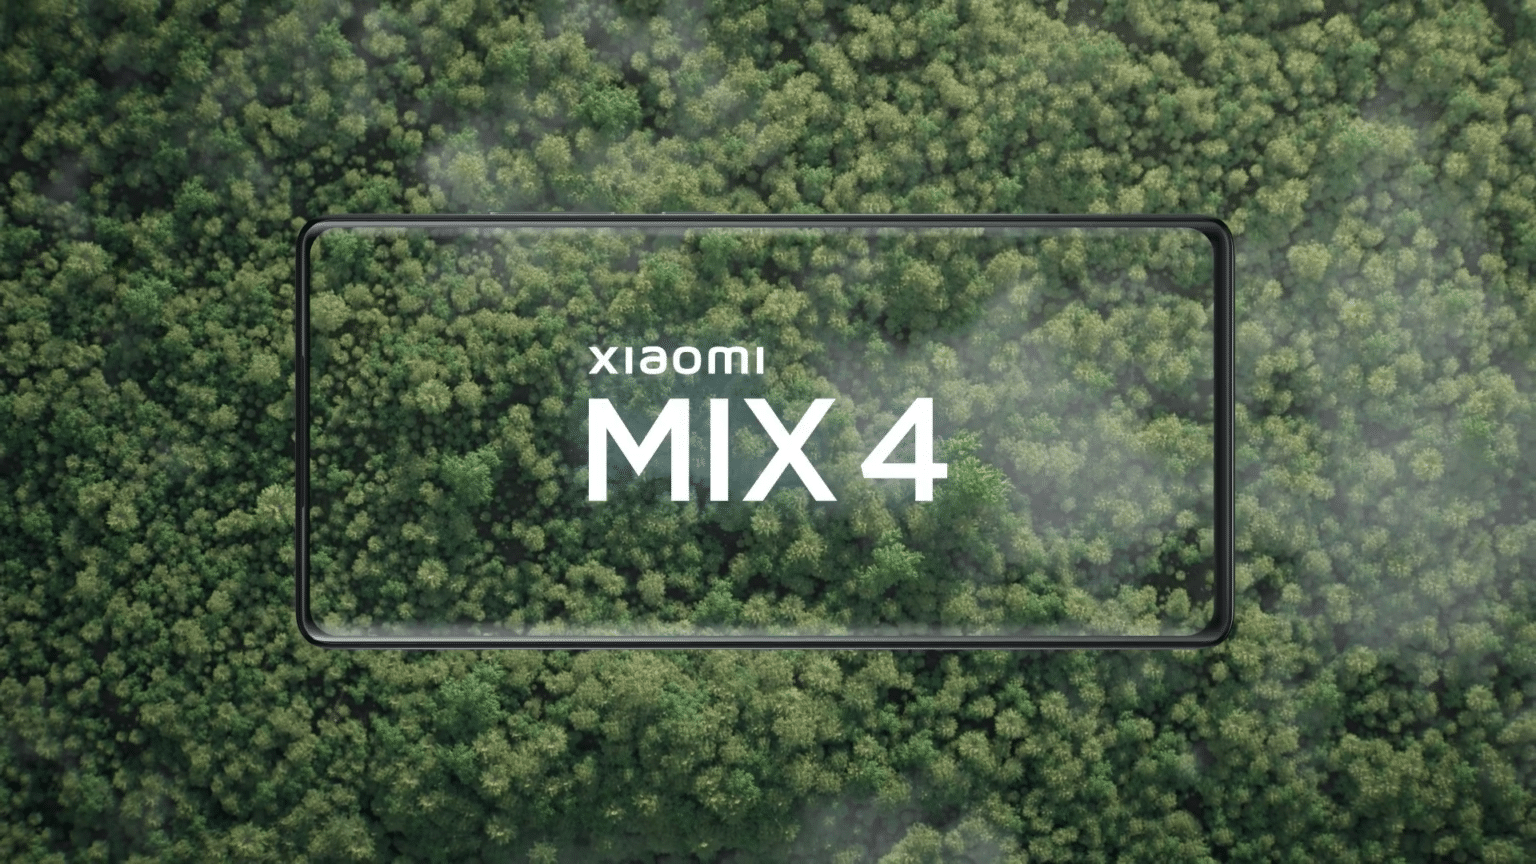 Xiaomi Mi Mix 4 Full Specifications Revealed Ahead of Launch